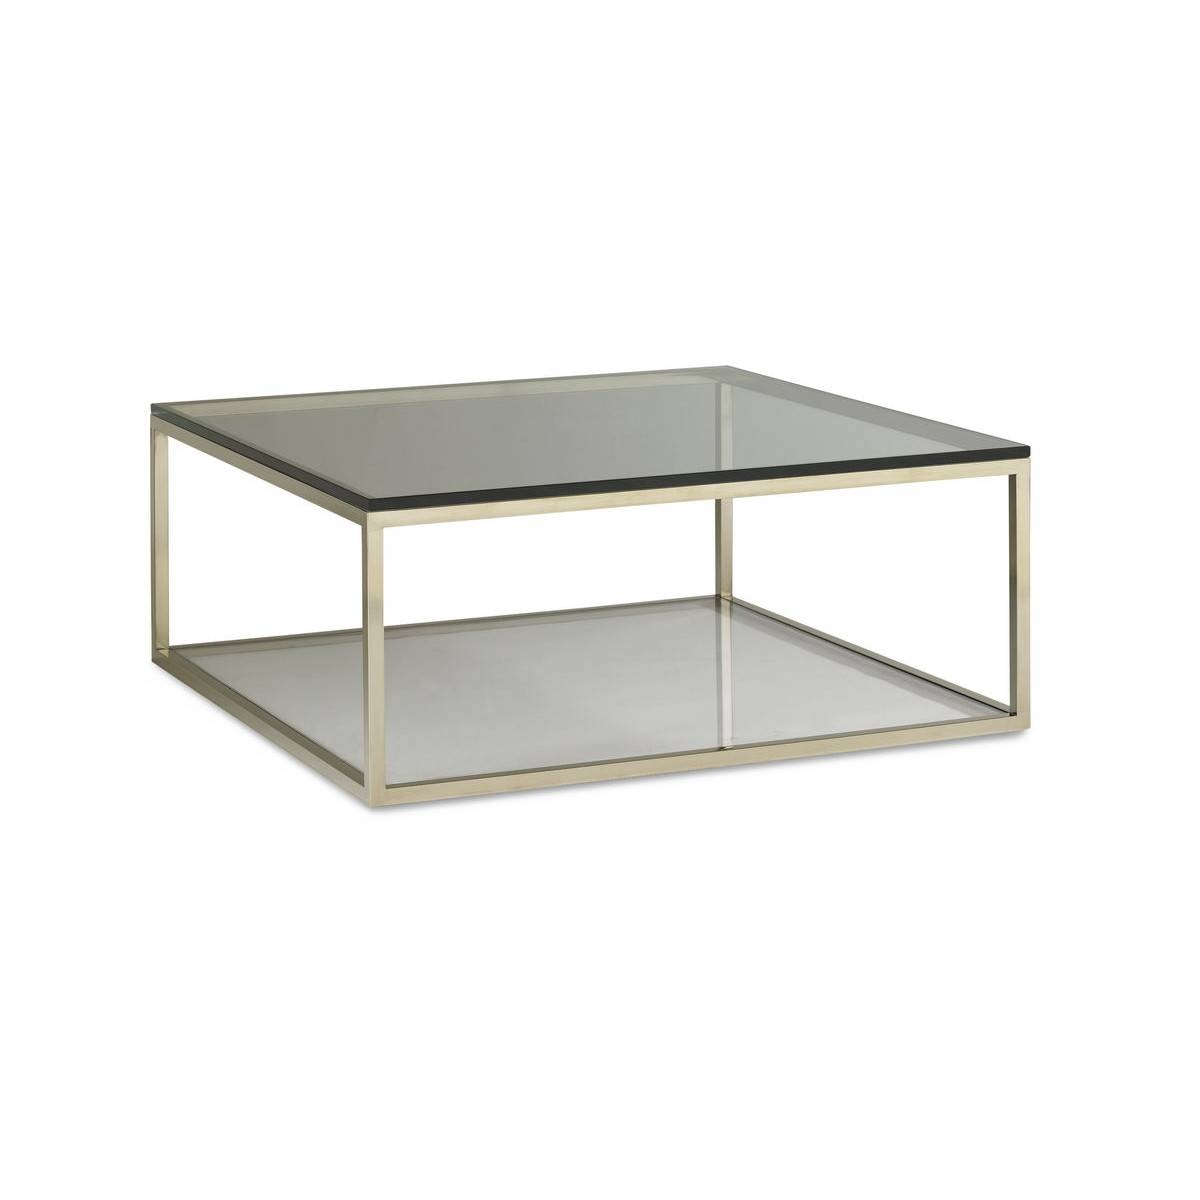 Glass Square Coffee Table - Jericho Mafjar Project pertaining to Chrome And Glass Coffee Tables (Image 16 of 30)